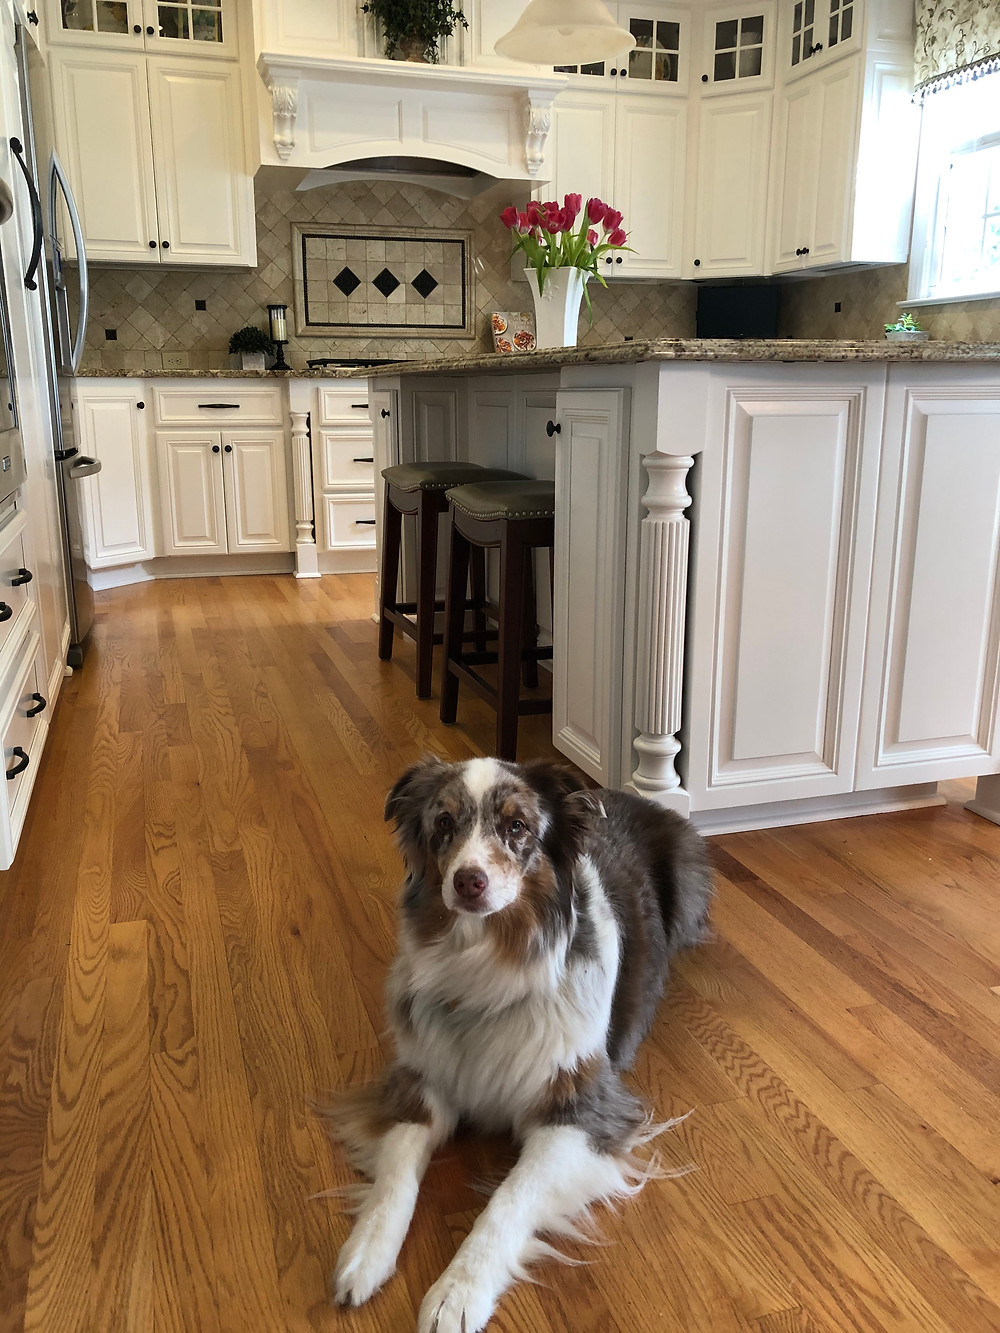 Dog laying down in a kitchen